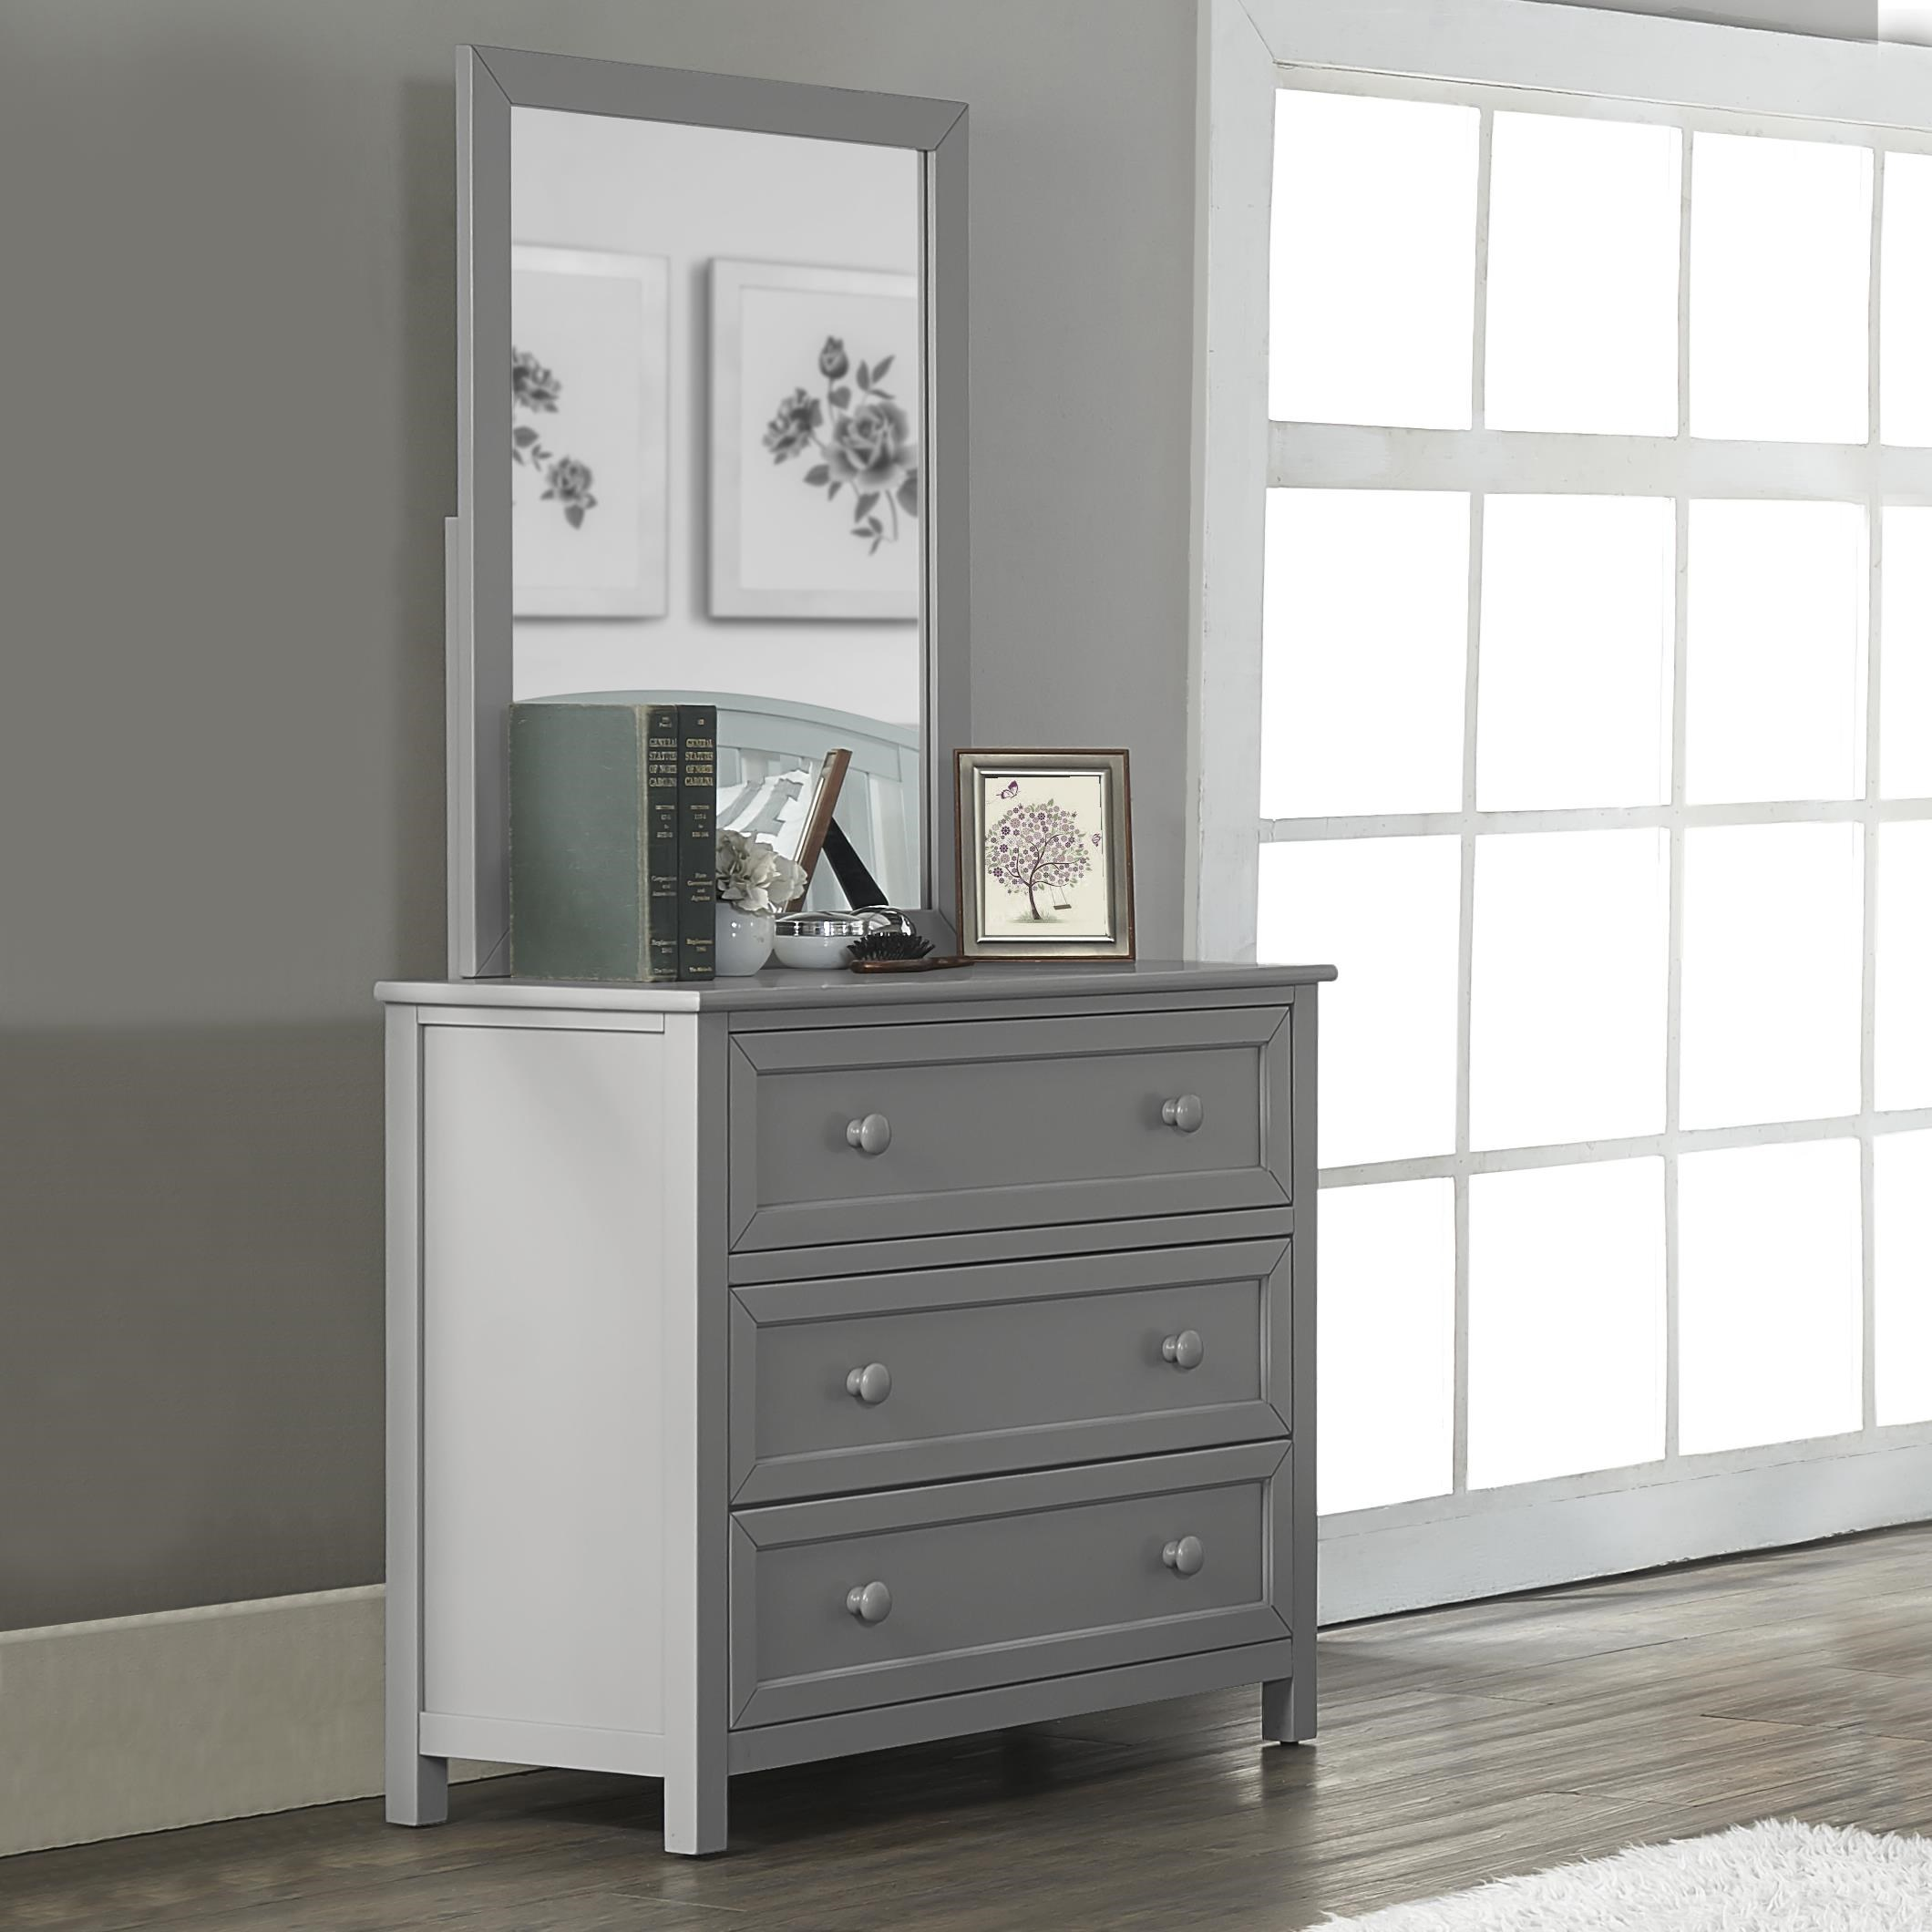 Schoolhouse Chest by Hillsdale at Value City Furniture